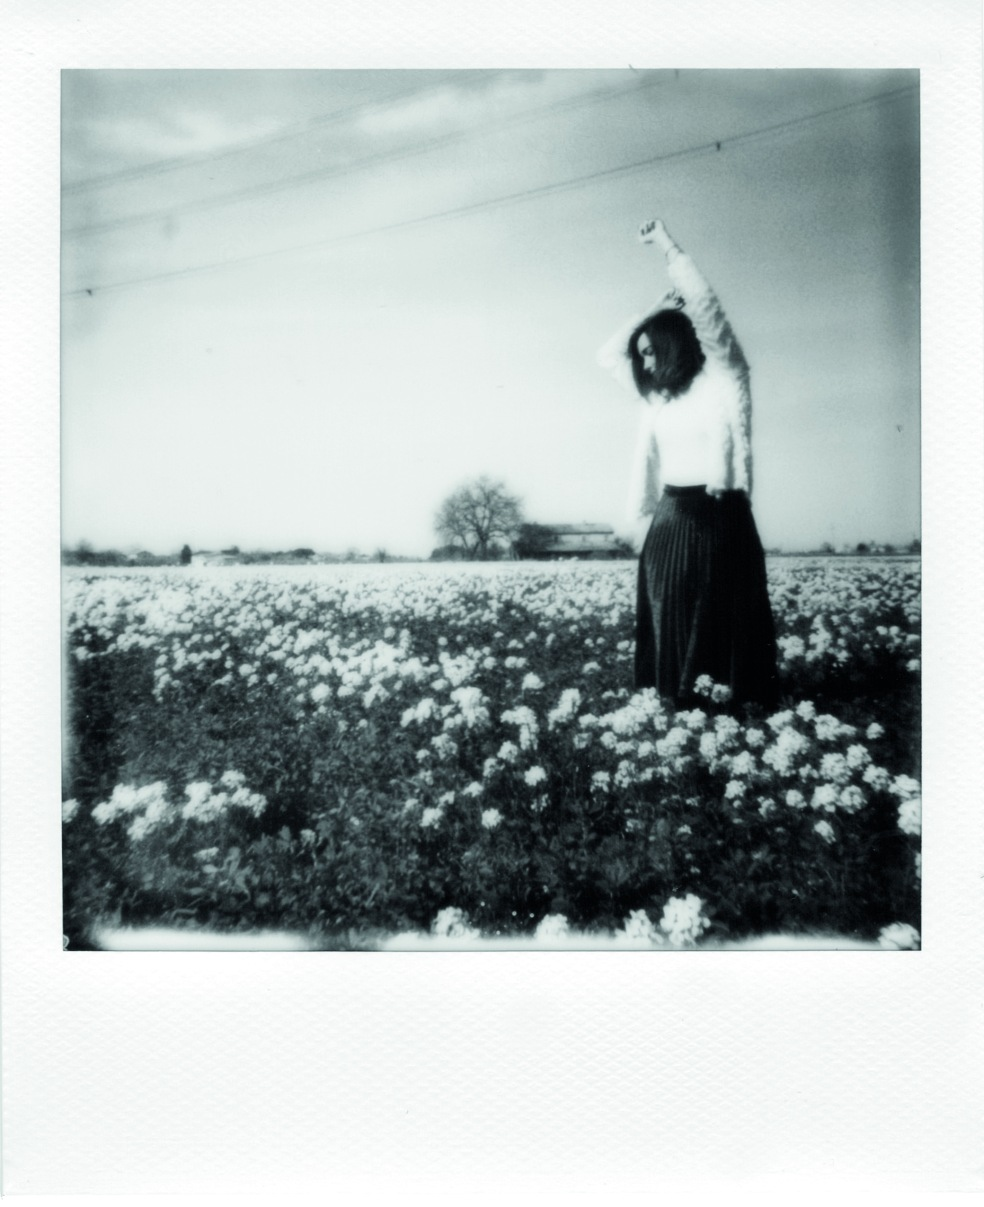 Alessia_amati_white flowers field_polaroid 600_polaroid originals Black&white